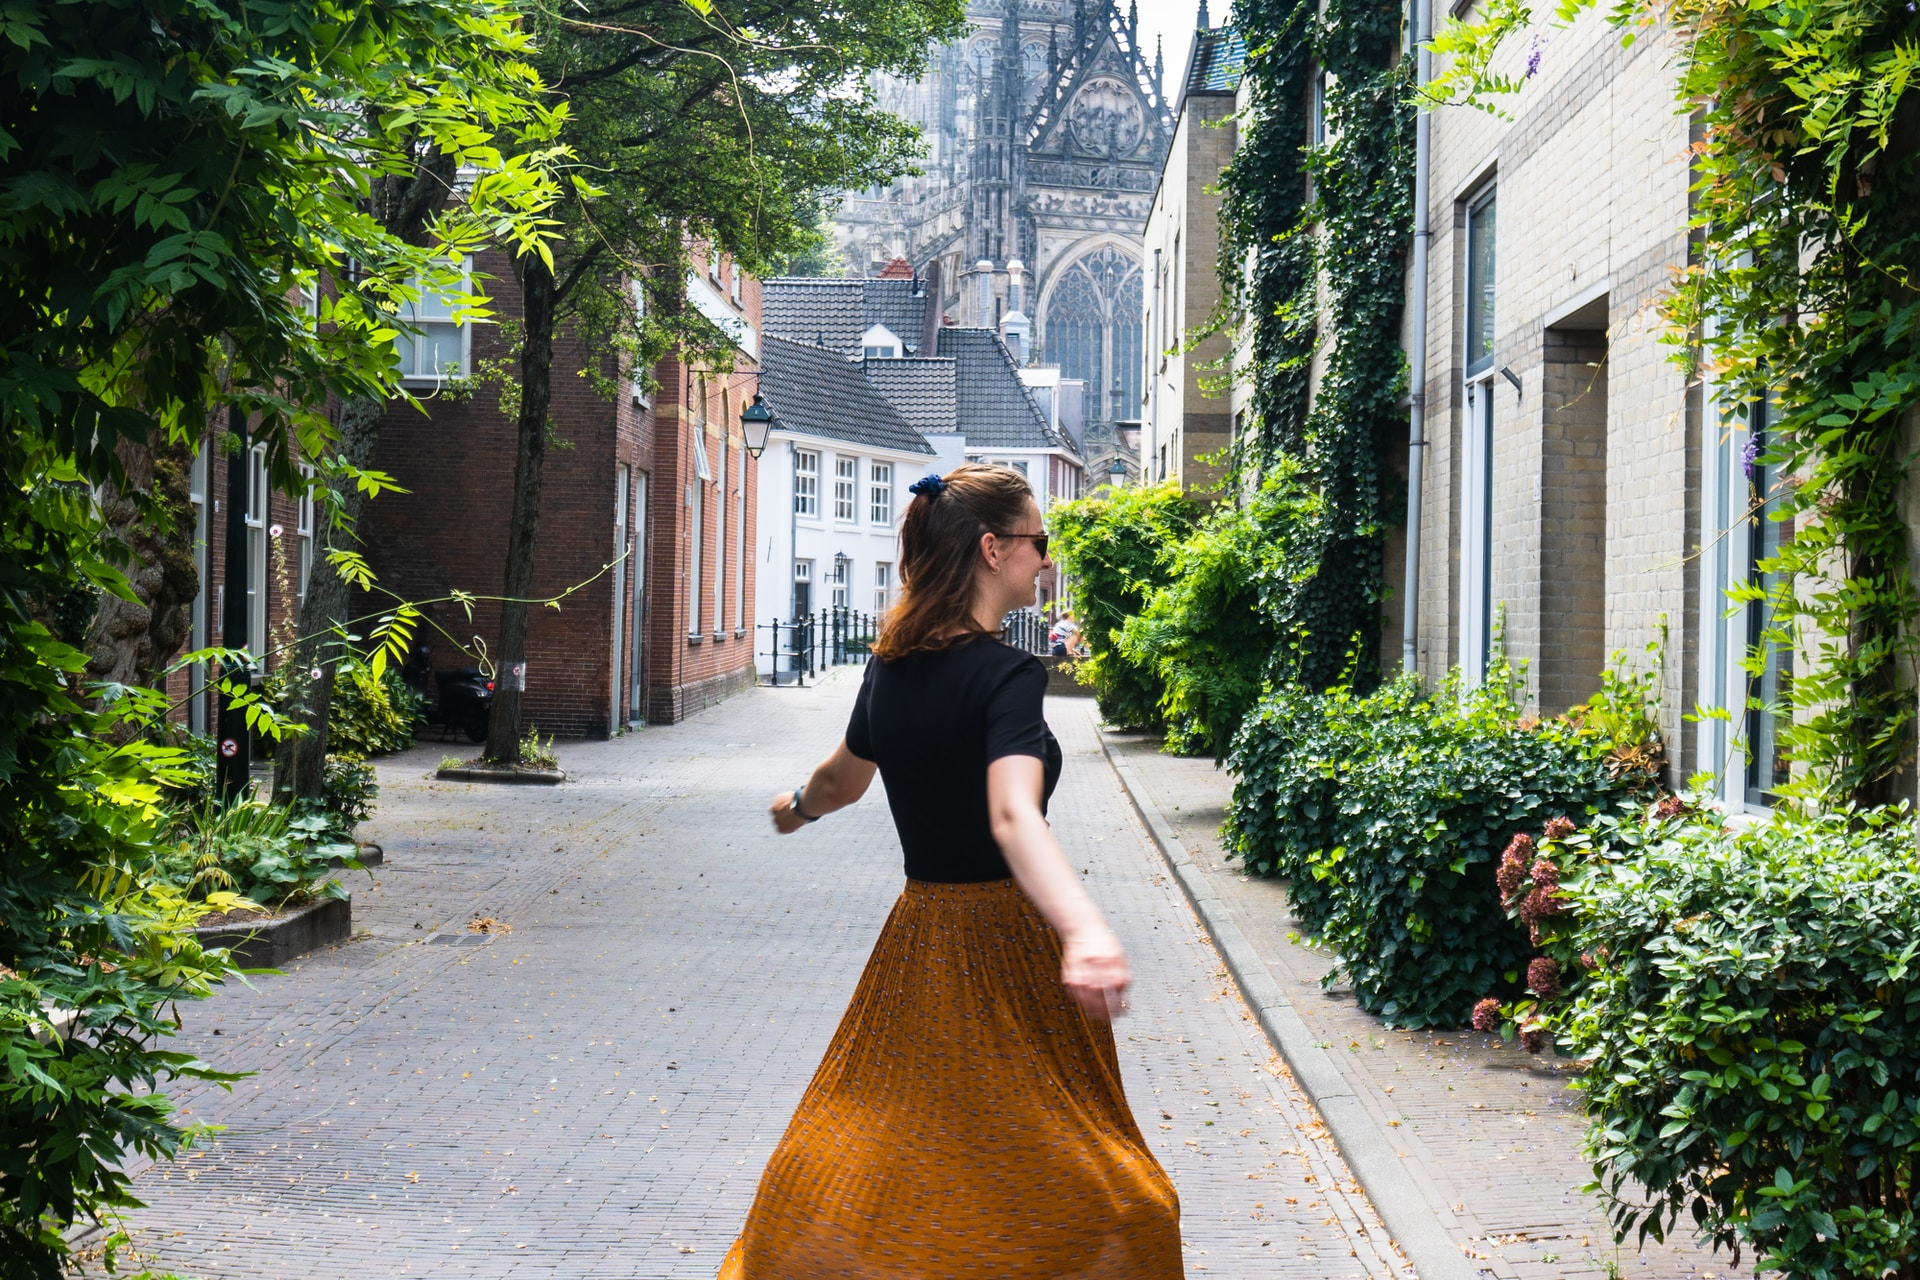 woman in black long sleeve shirt and red skirt walking on sidewalk during daytime